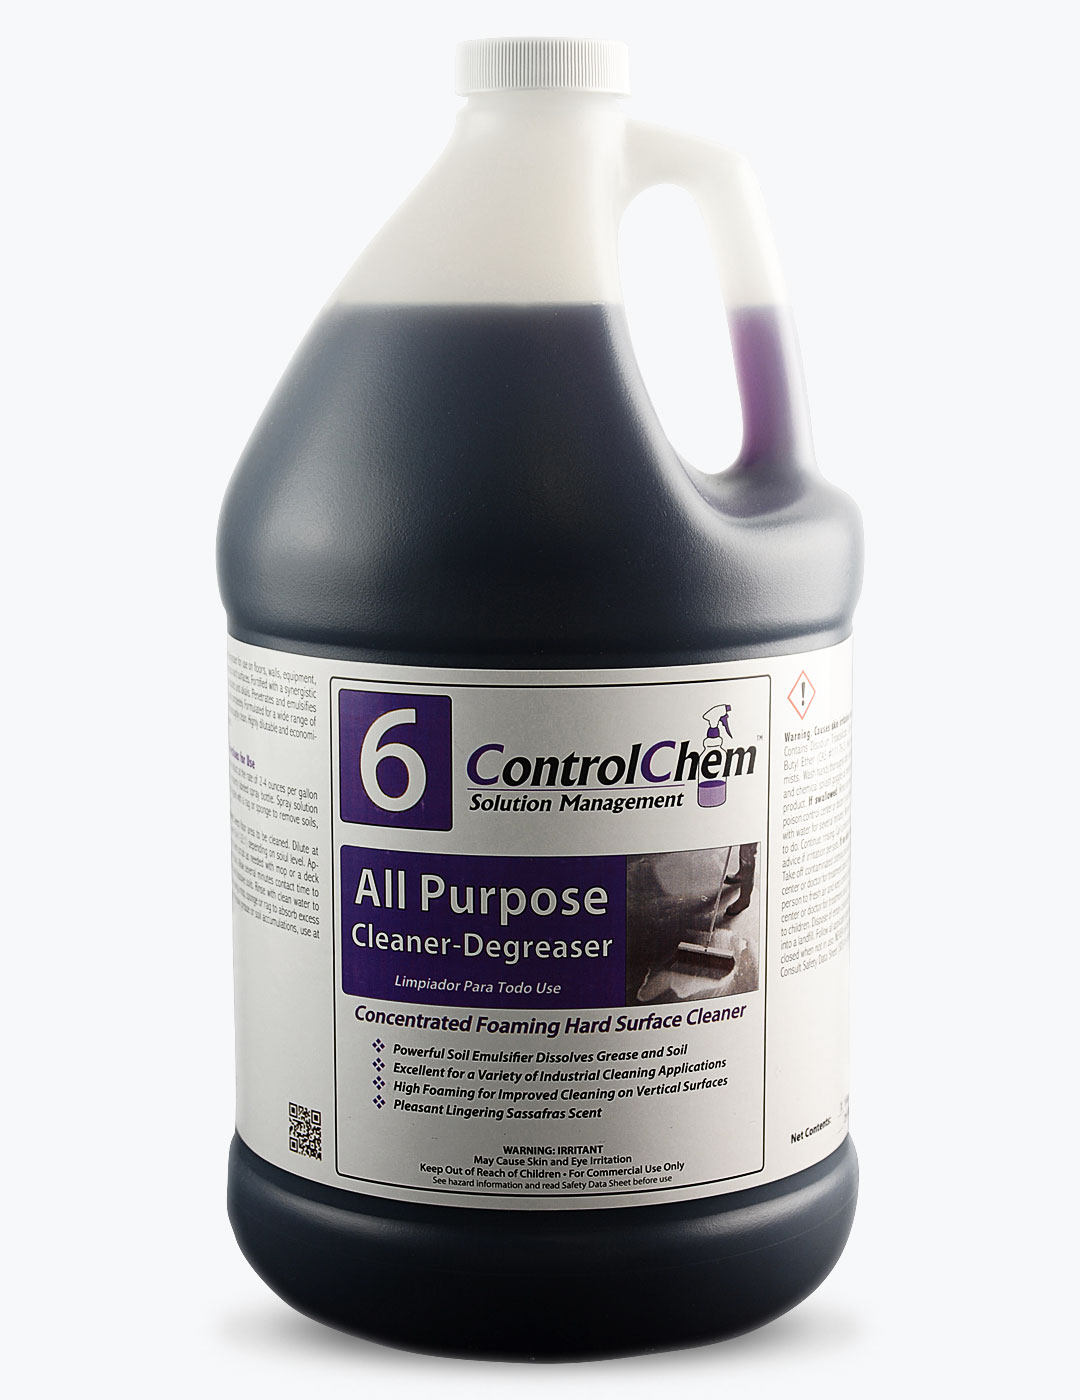 ControlChem #6 All Purpose Cleaner-Degreaser